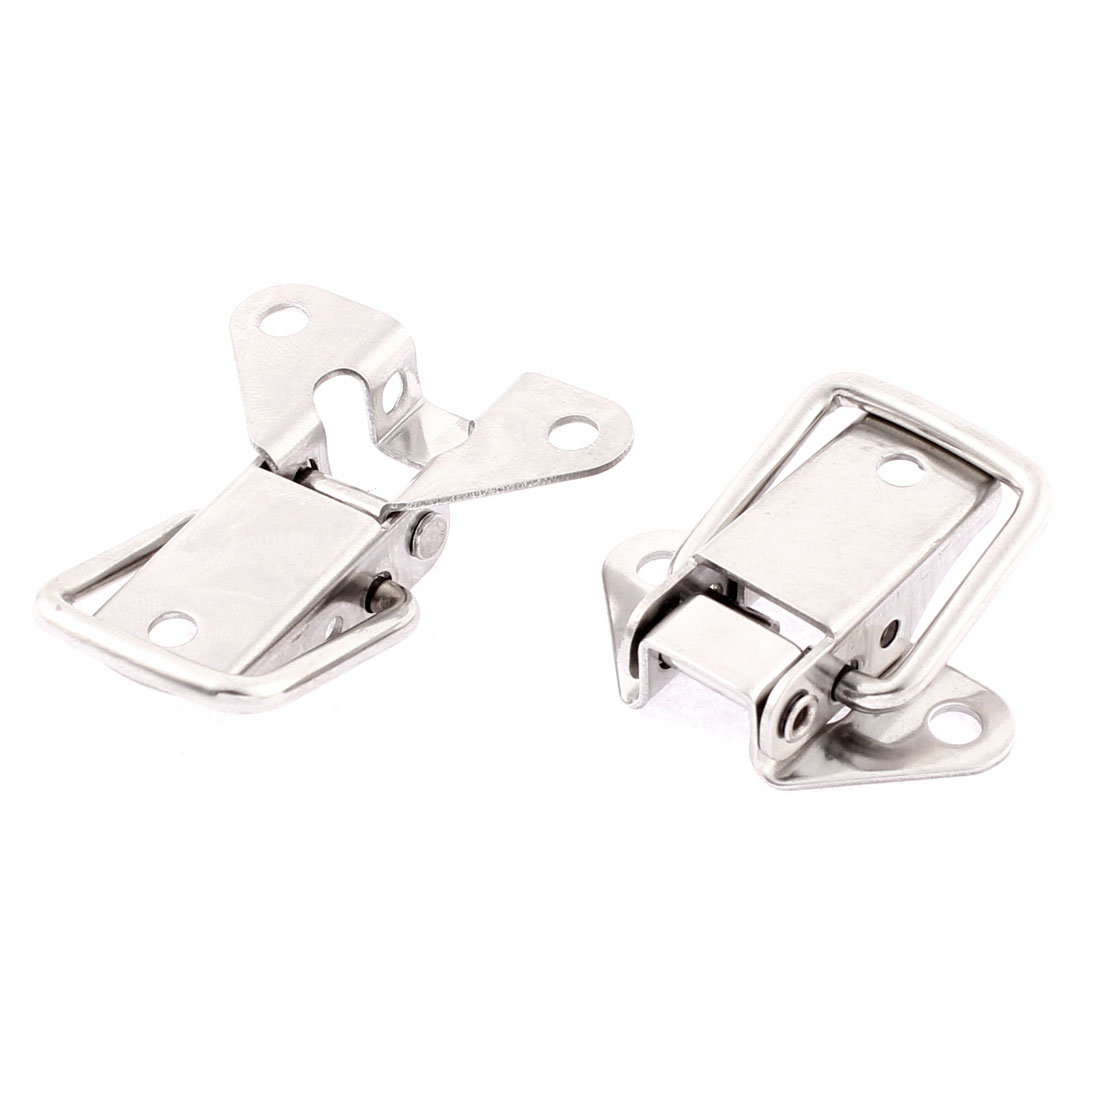 Suitcase Case Box Locking Toggle Latch Silver Tone 2Pcs